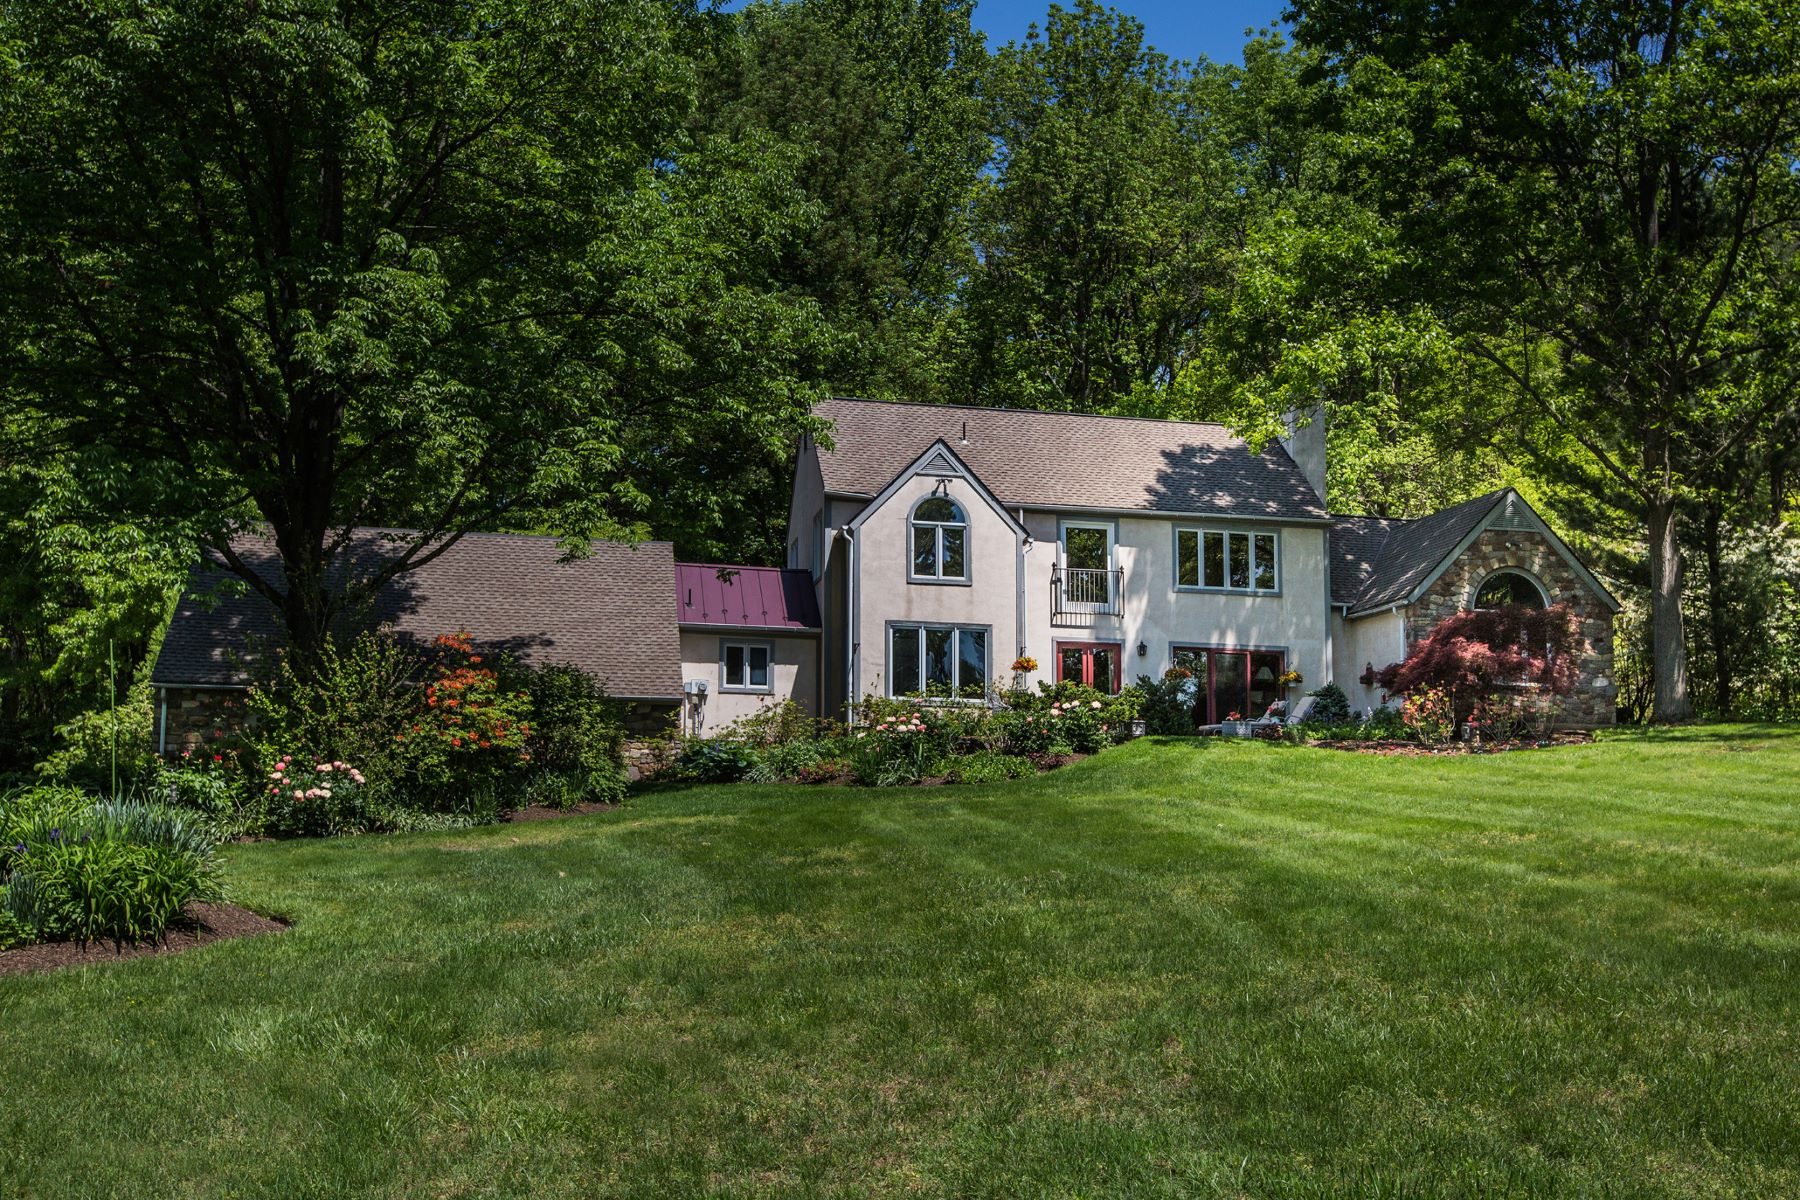 Single Family Home for Sale at 3320 N Sugan Rd New Hope, Pennsylvania, 18938 United States